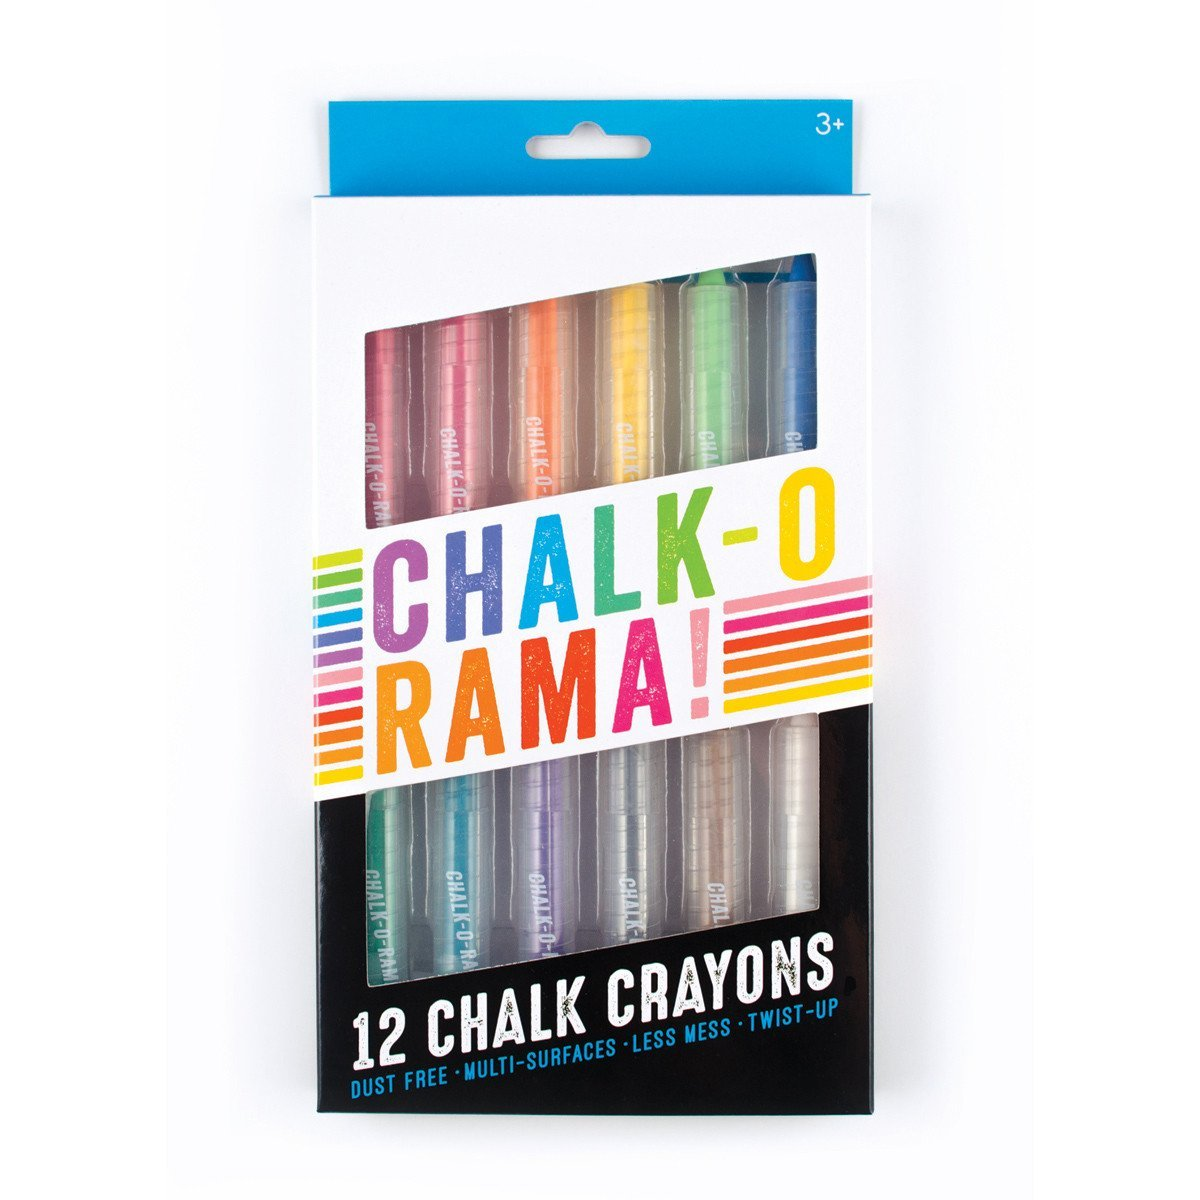 OOLY: Chalk-O-Rama Dustless Chalk Crayons